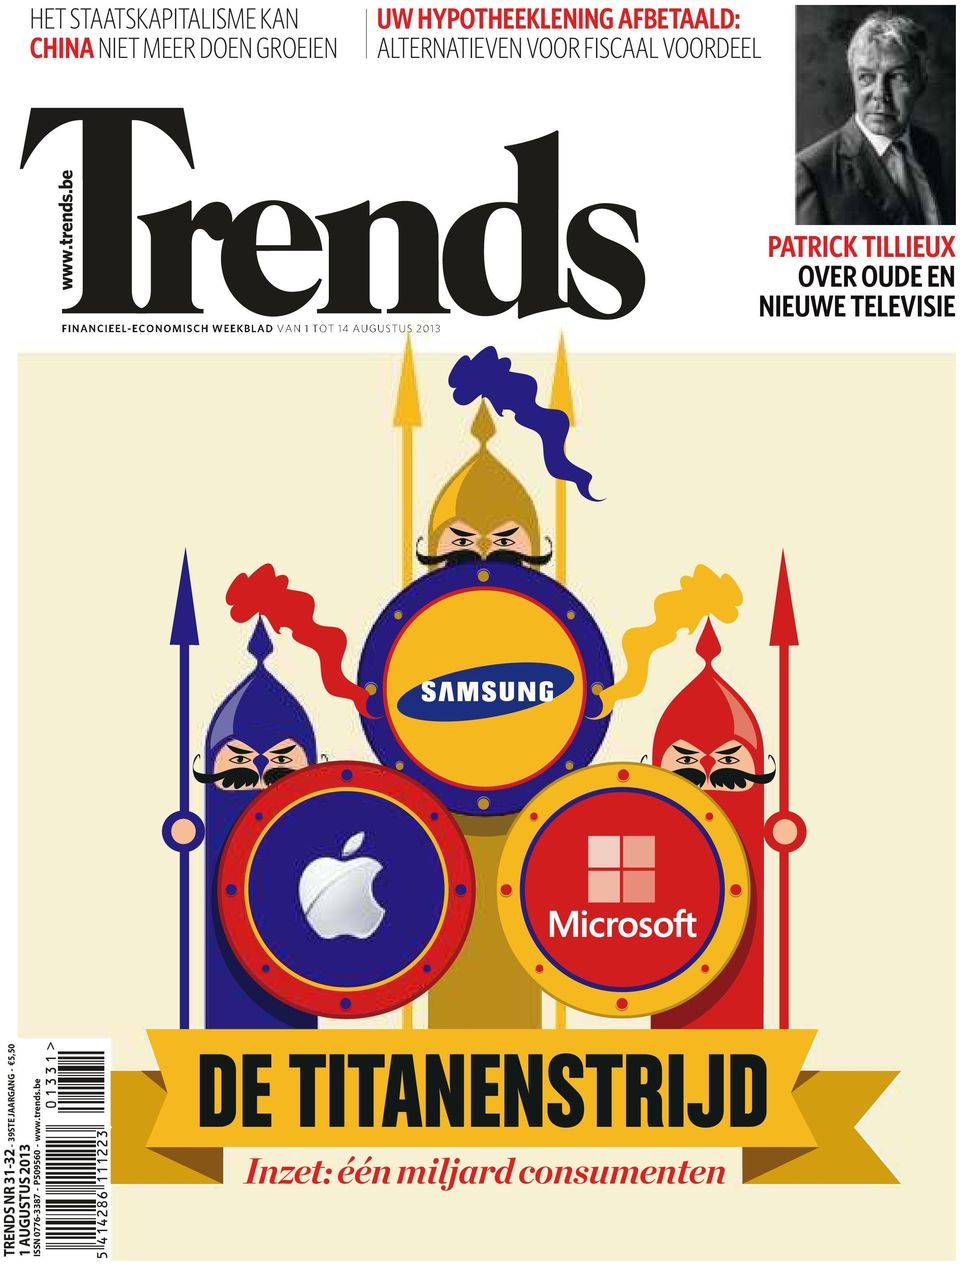 be FINANCIEEL-ECONOMISCH WEEKBLAD VAN 1 TOT 14 AUGUSTUS 2013 PATRICK TILLIEUX OVER OUDE EN